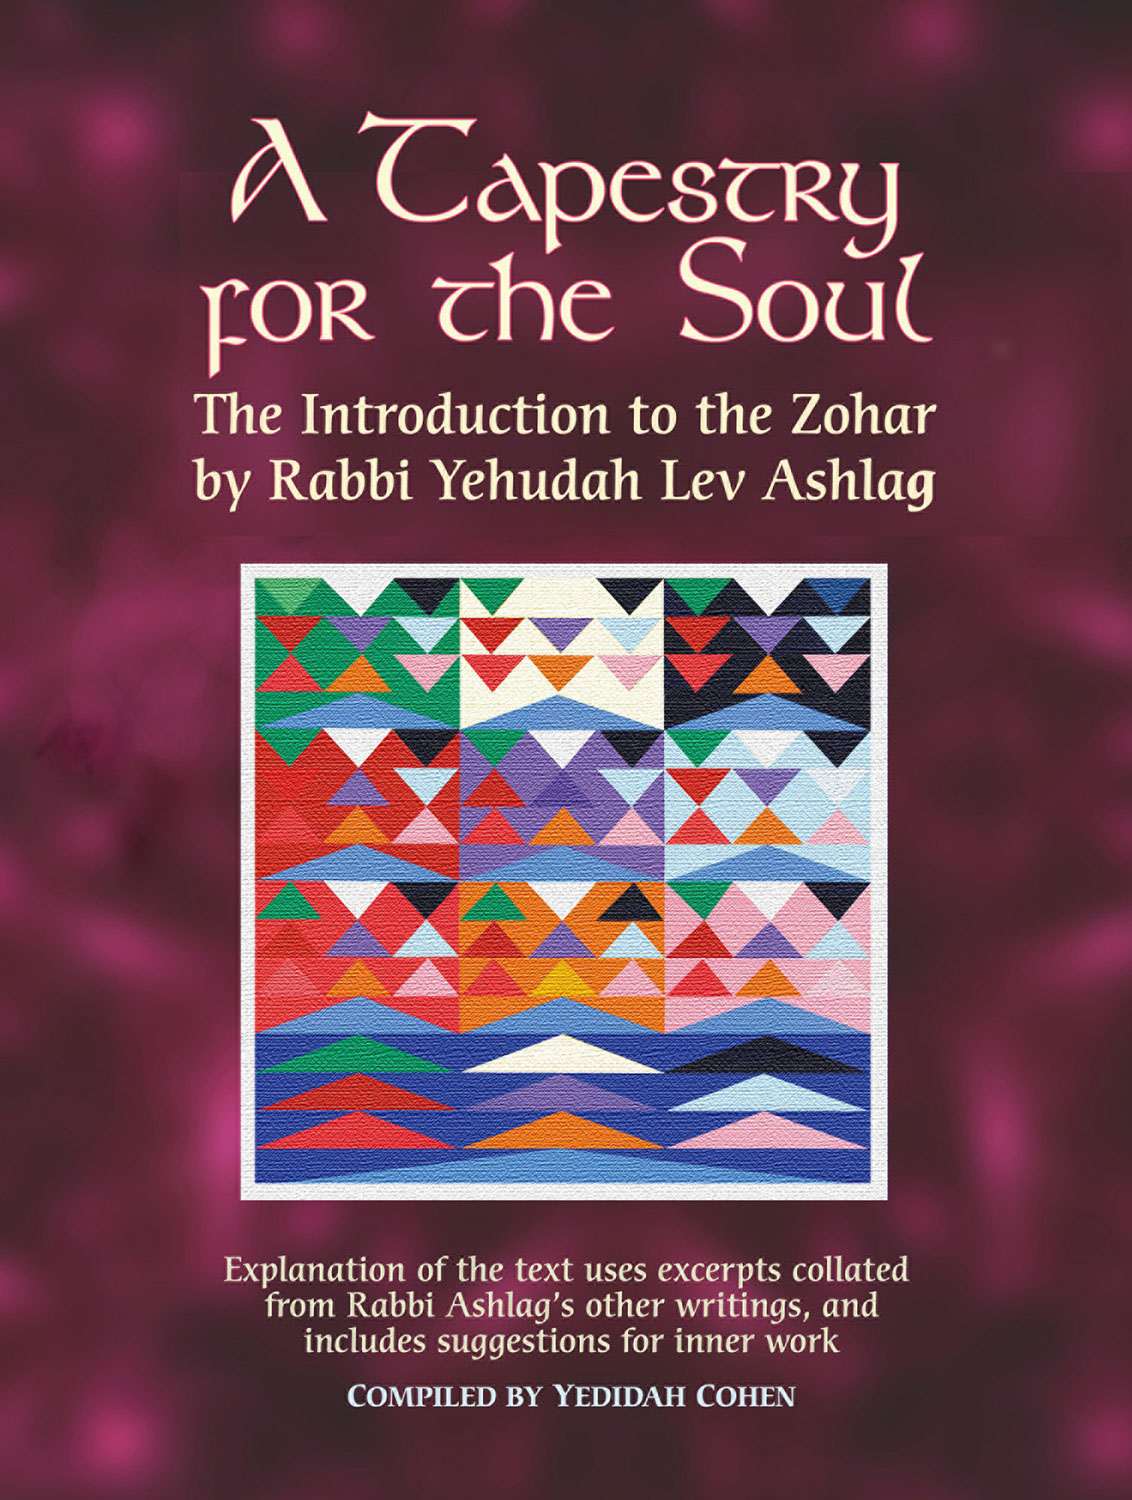 A Tapestry for the Soul: The Introduction to the Zohar by Rabbi Yehudah Lev Ashlag, Explained Using Excerpts Collated from His Other Writings Including Suggestions for Inner Work By: Rabbi Yehudah Lev Ashlag,Yedidah Cohen